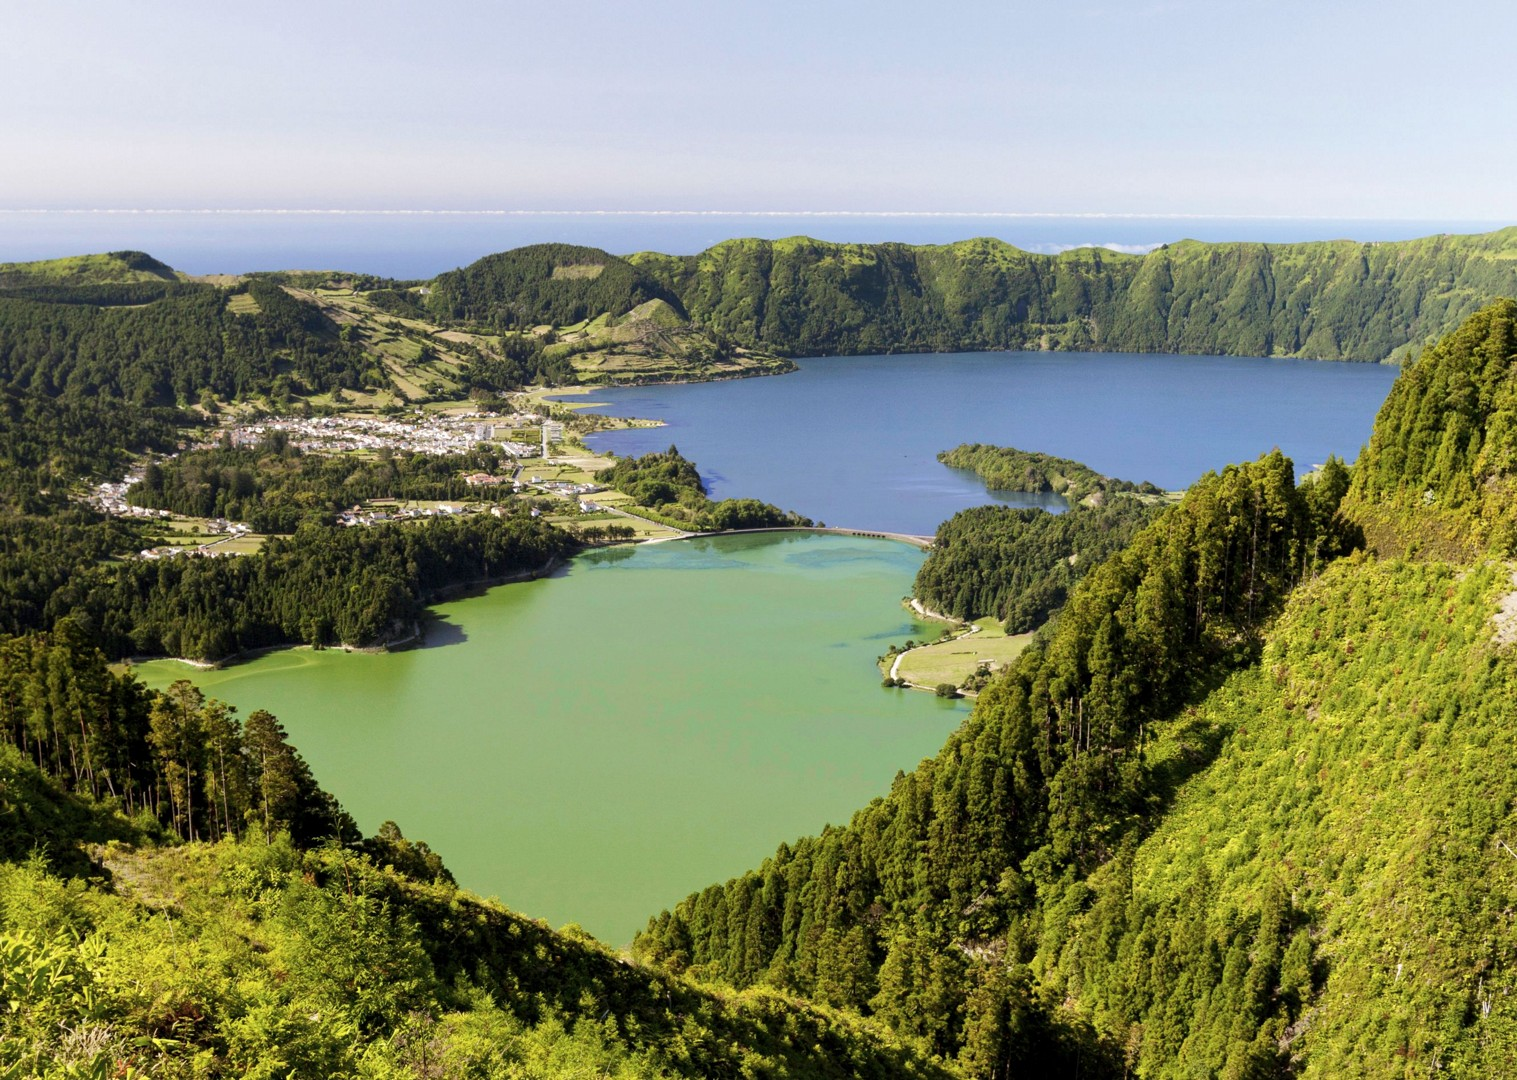 explore-the-fishing-port-Lagoa-cycling-trip-azores.jpg - The Azores - Islands and Volcanoes - Self-Guided Leisure Cycling Holiday - Leisure Cycling